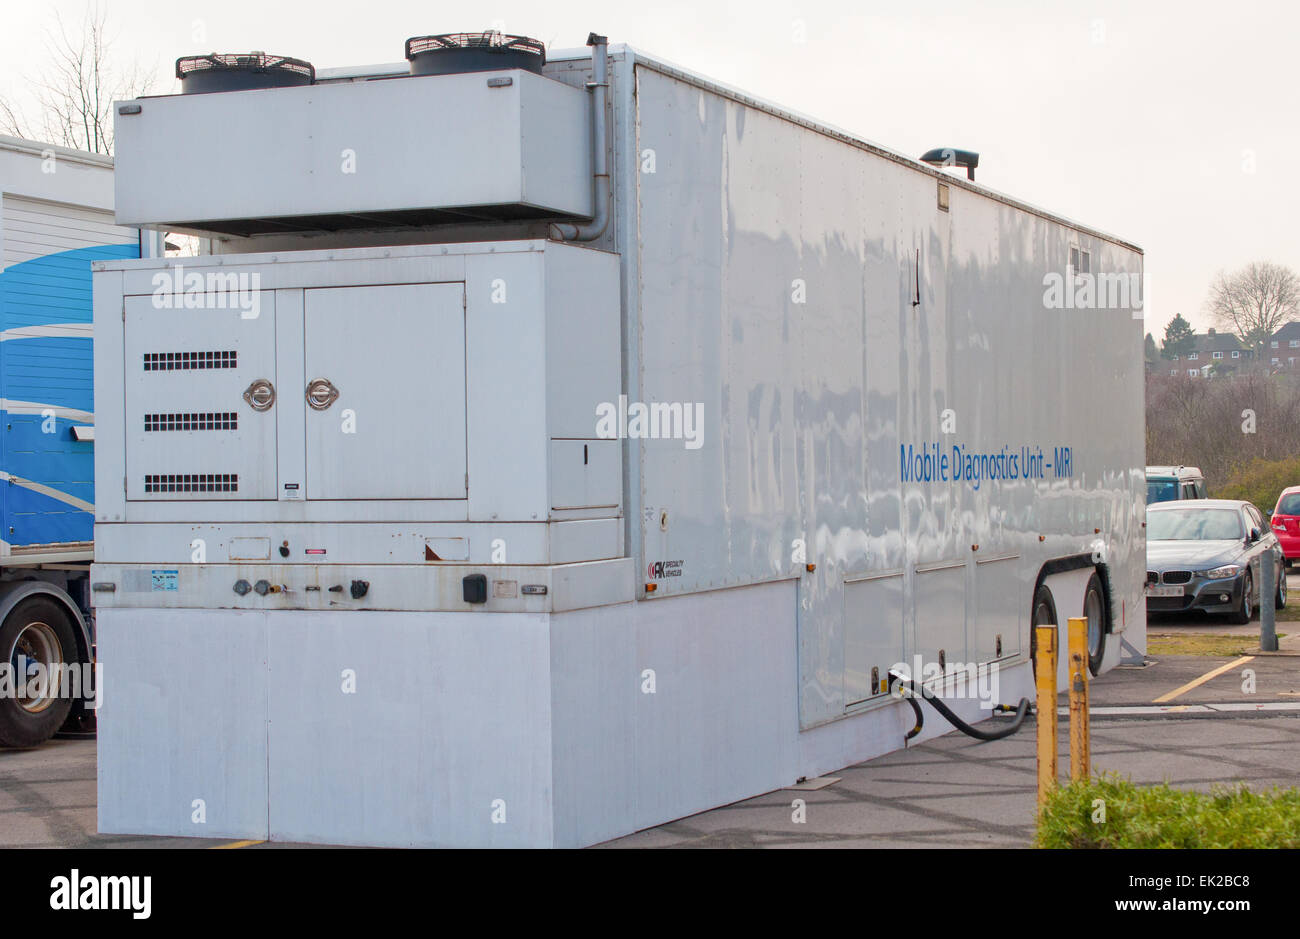 Mobile MRI scanning unit in a hospital car park horizontal view - Stock Image